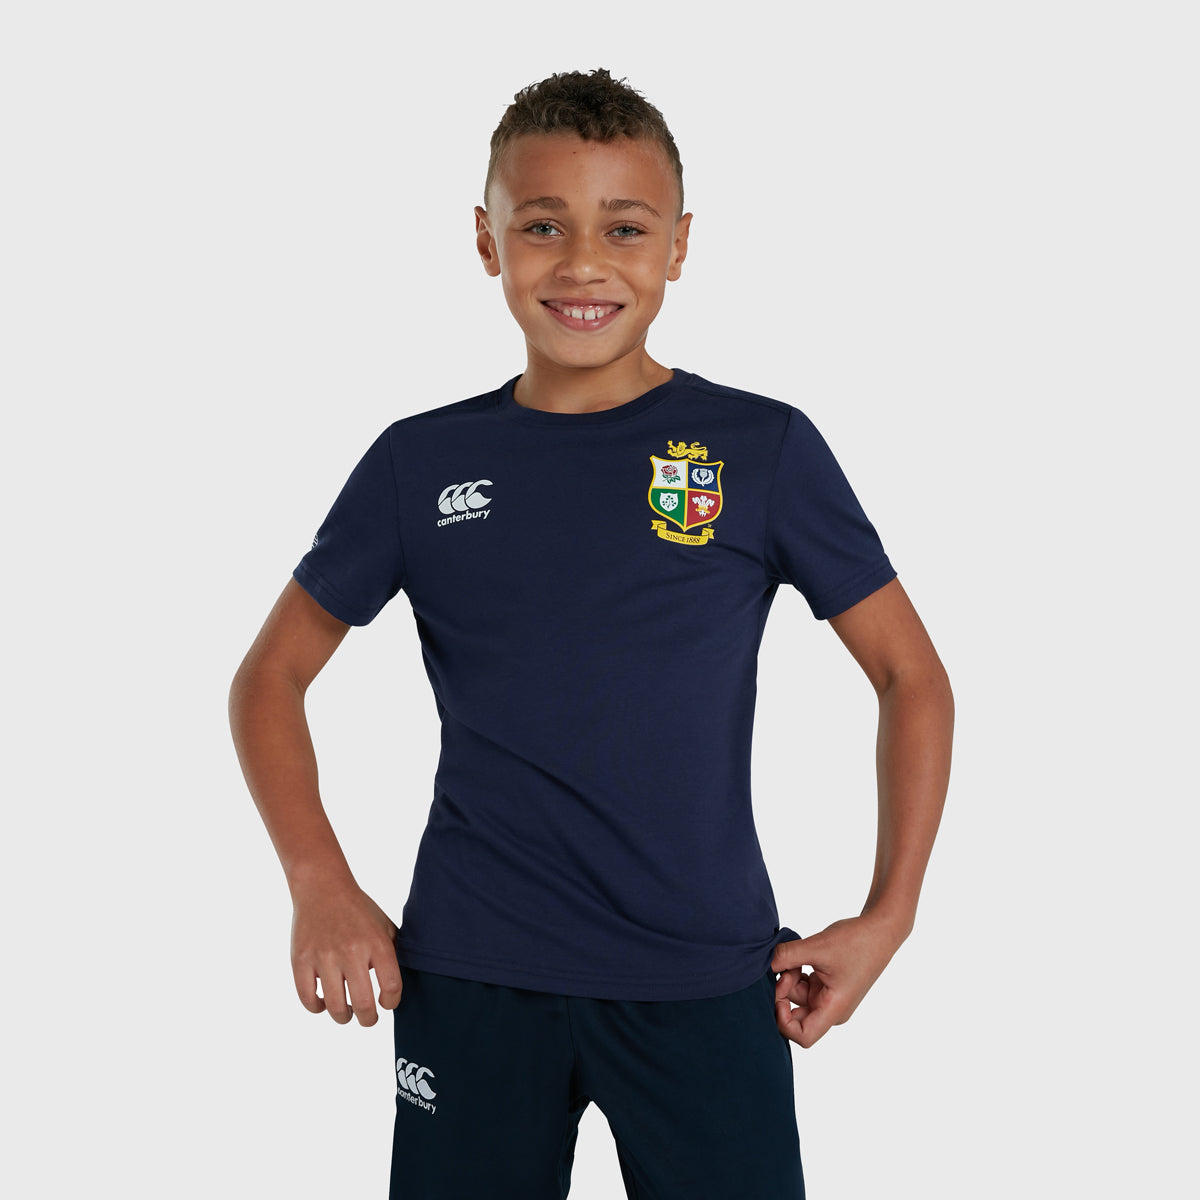 British & Irish Lions SA 2021 Kid's Cotton Tee Navy